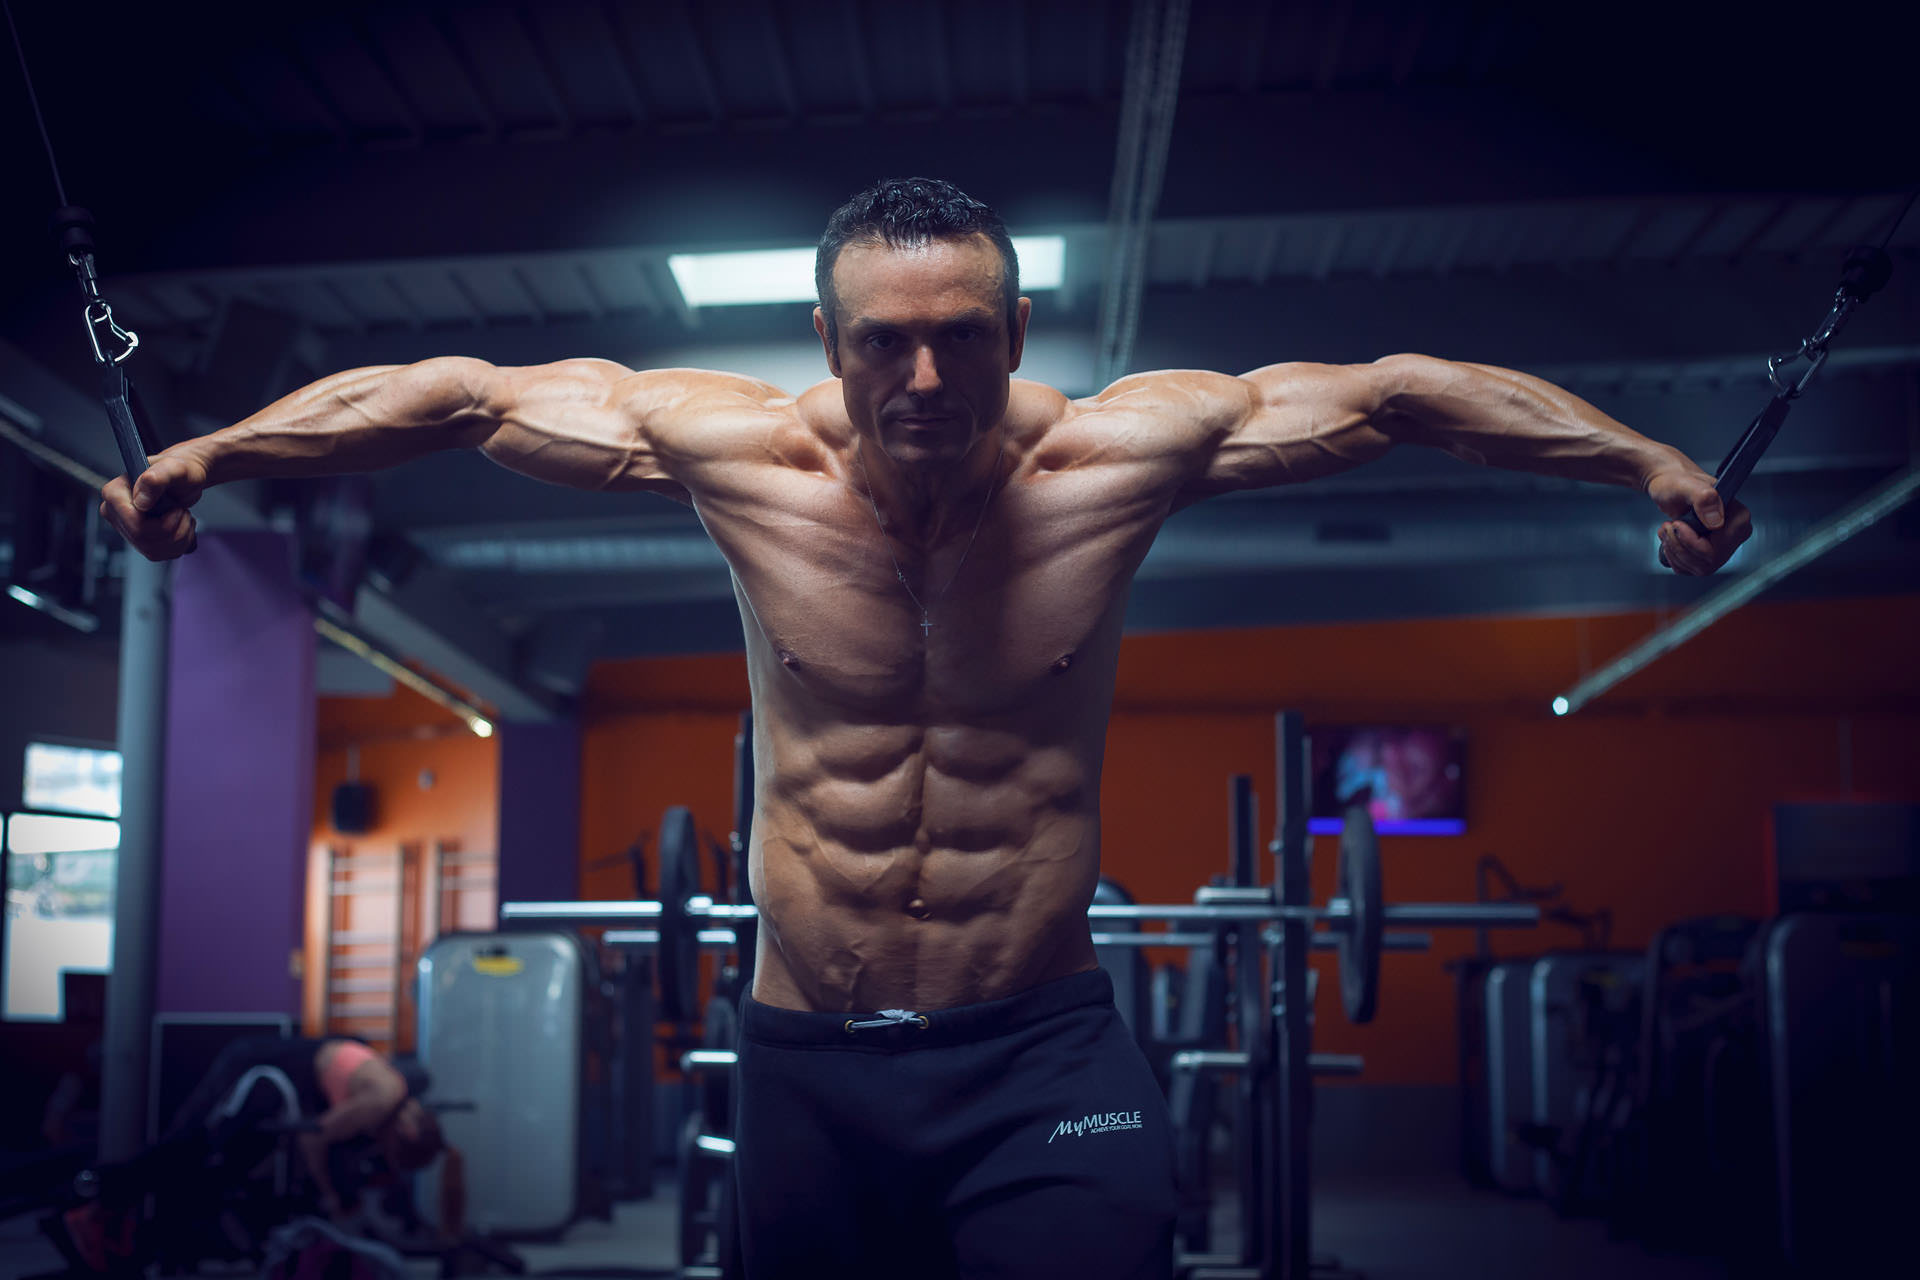 2017-02-24 - Enzo Foukra - MyMuscle - FitnessPark - 4362 - 1920px